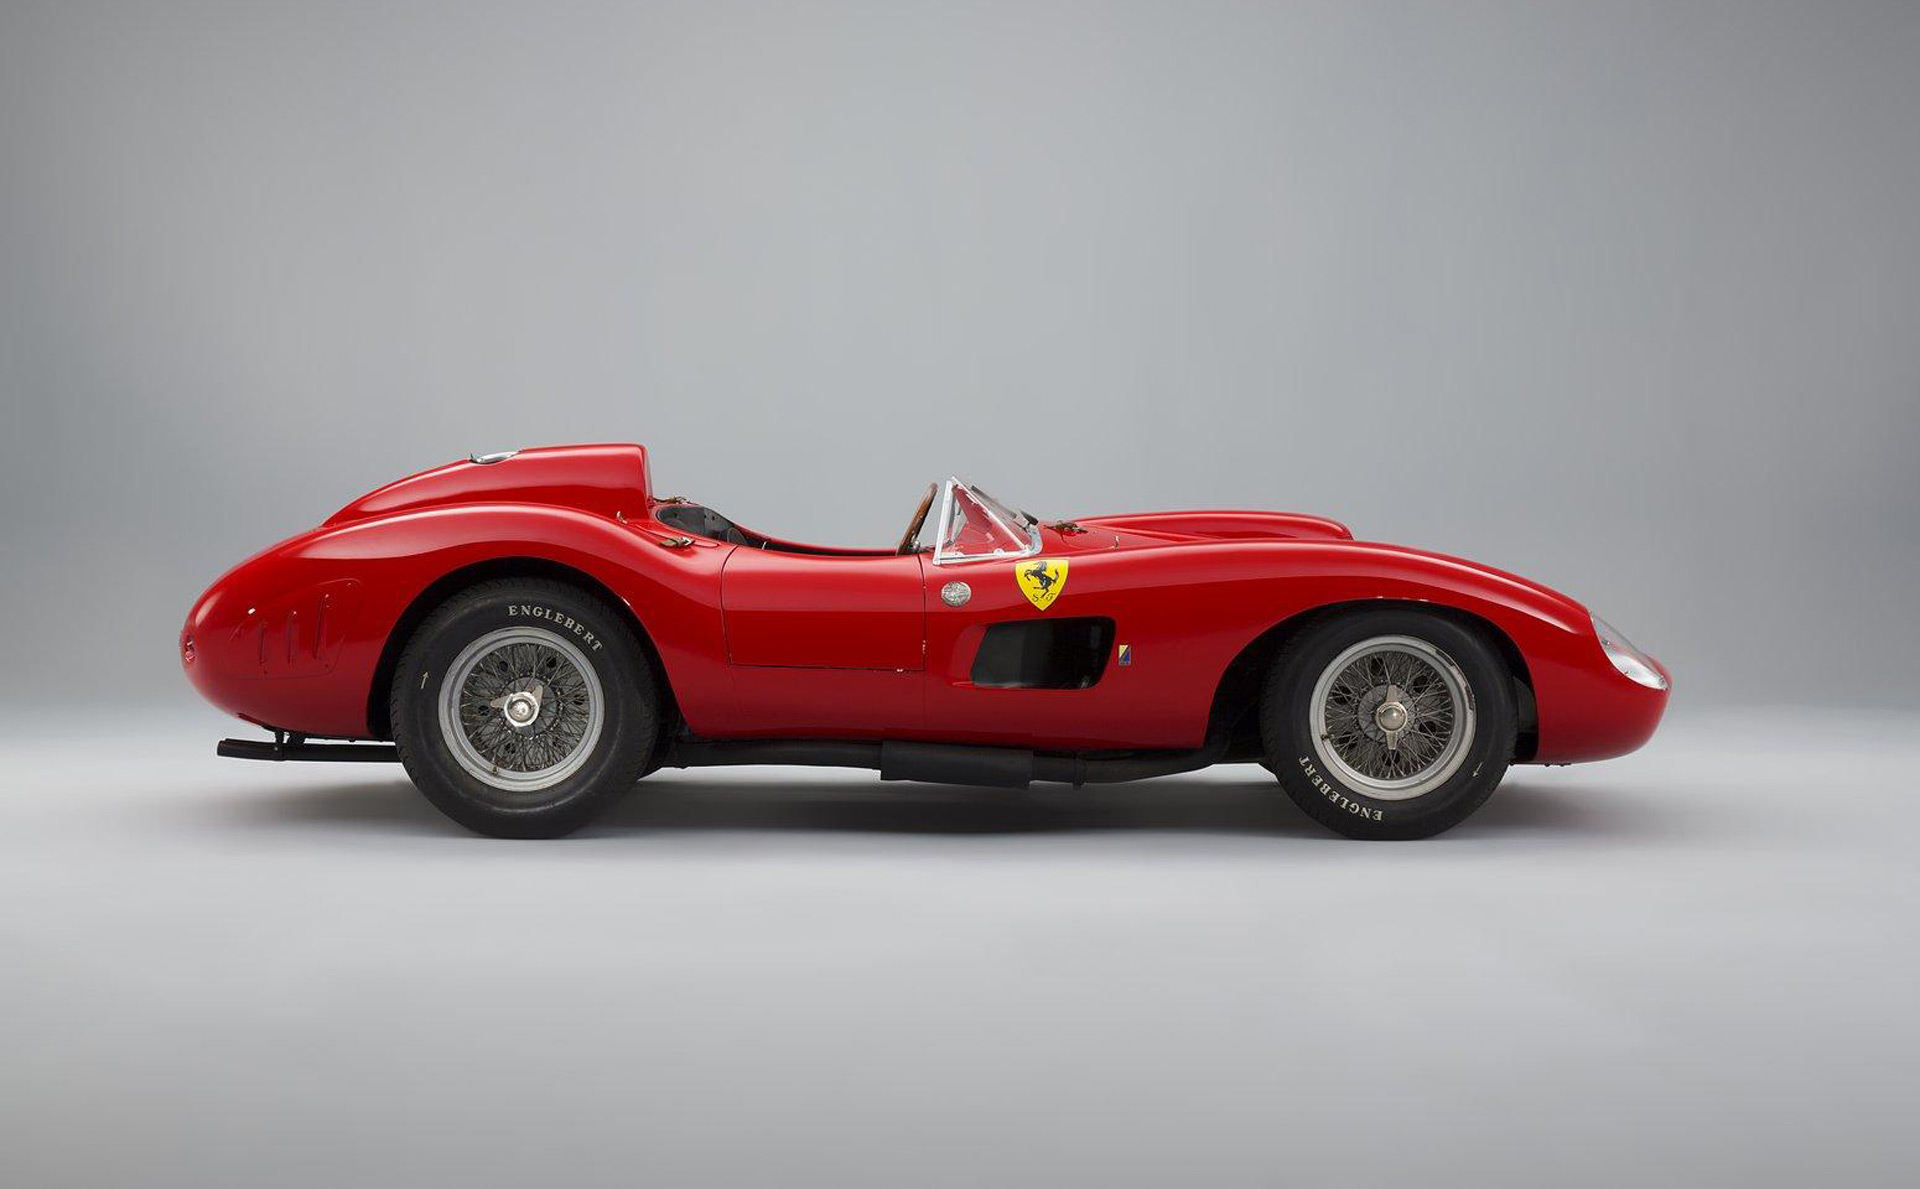 1957 Ferrari 335 S Sells For $36M  The 2nd Highest Price For A Car At  Auction